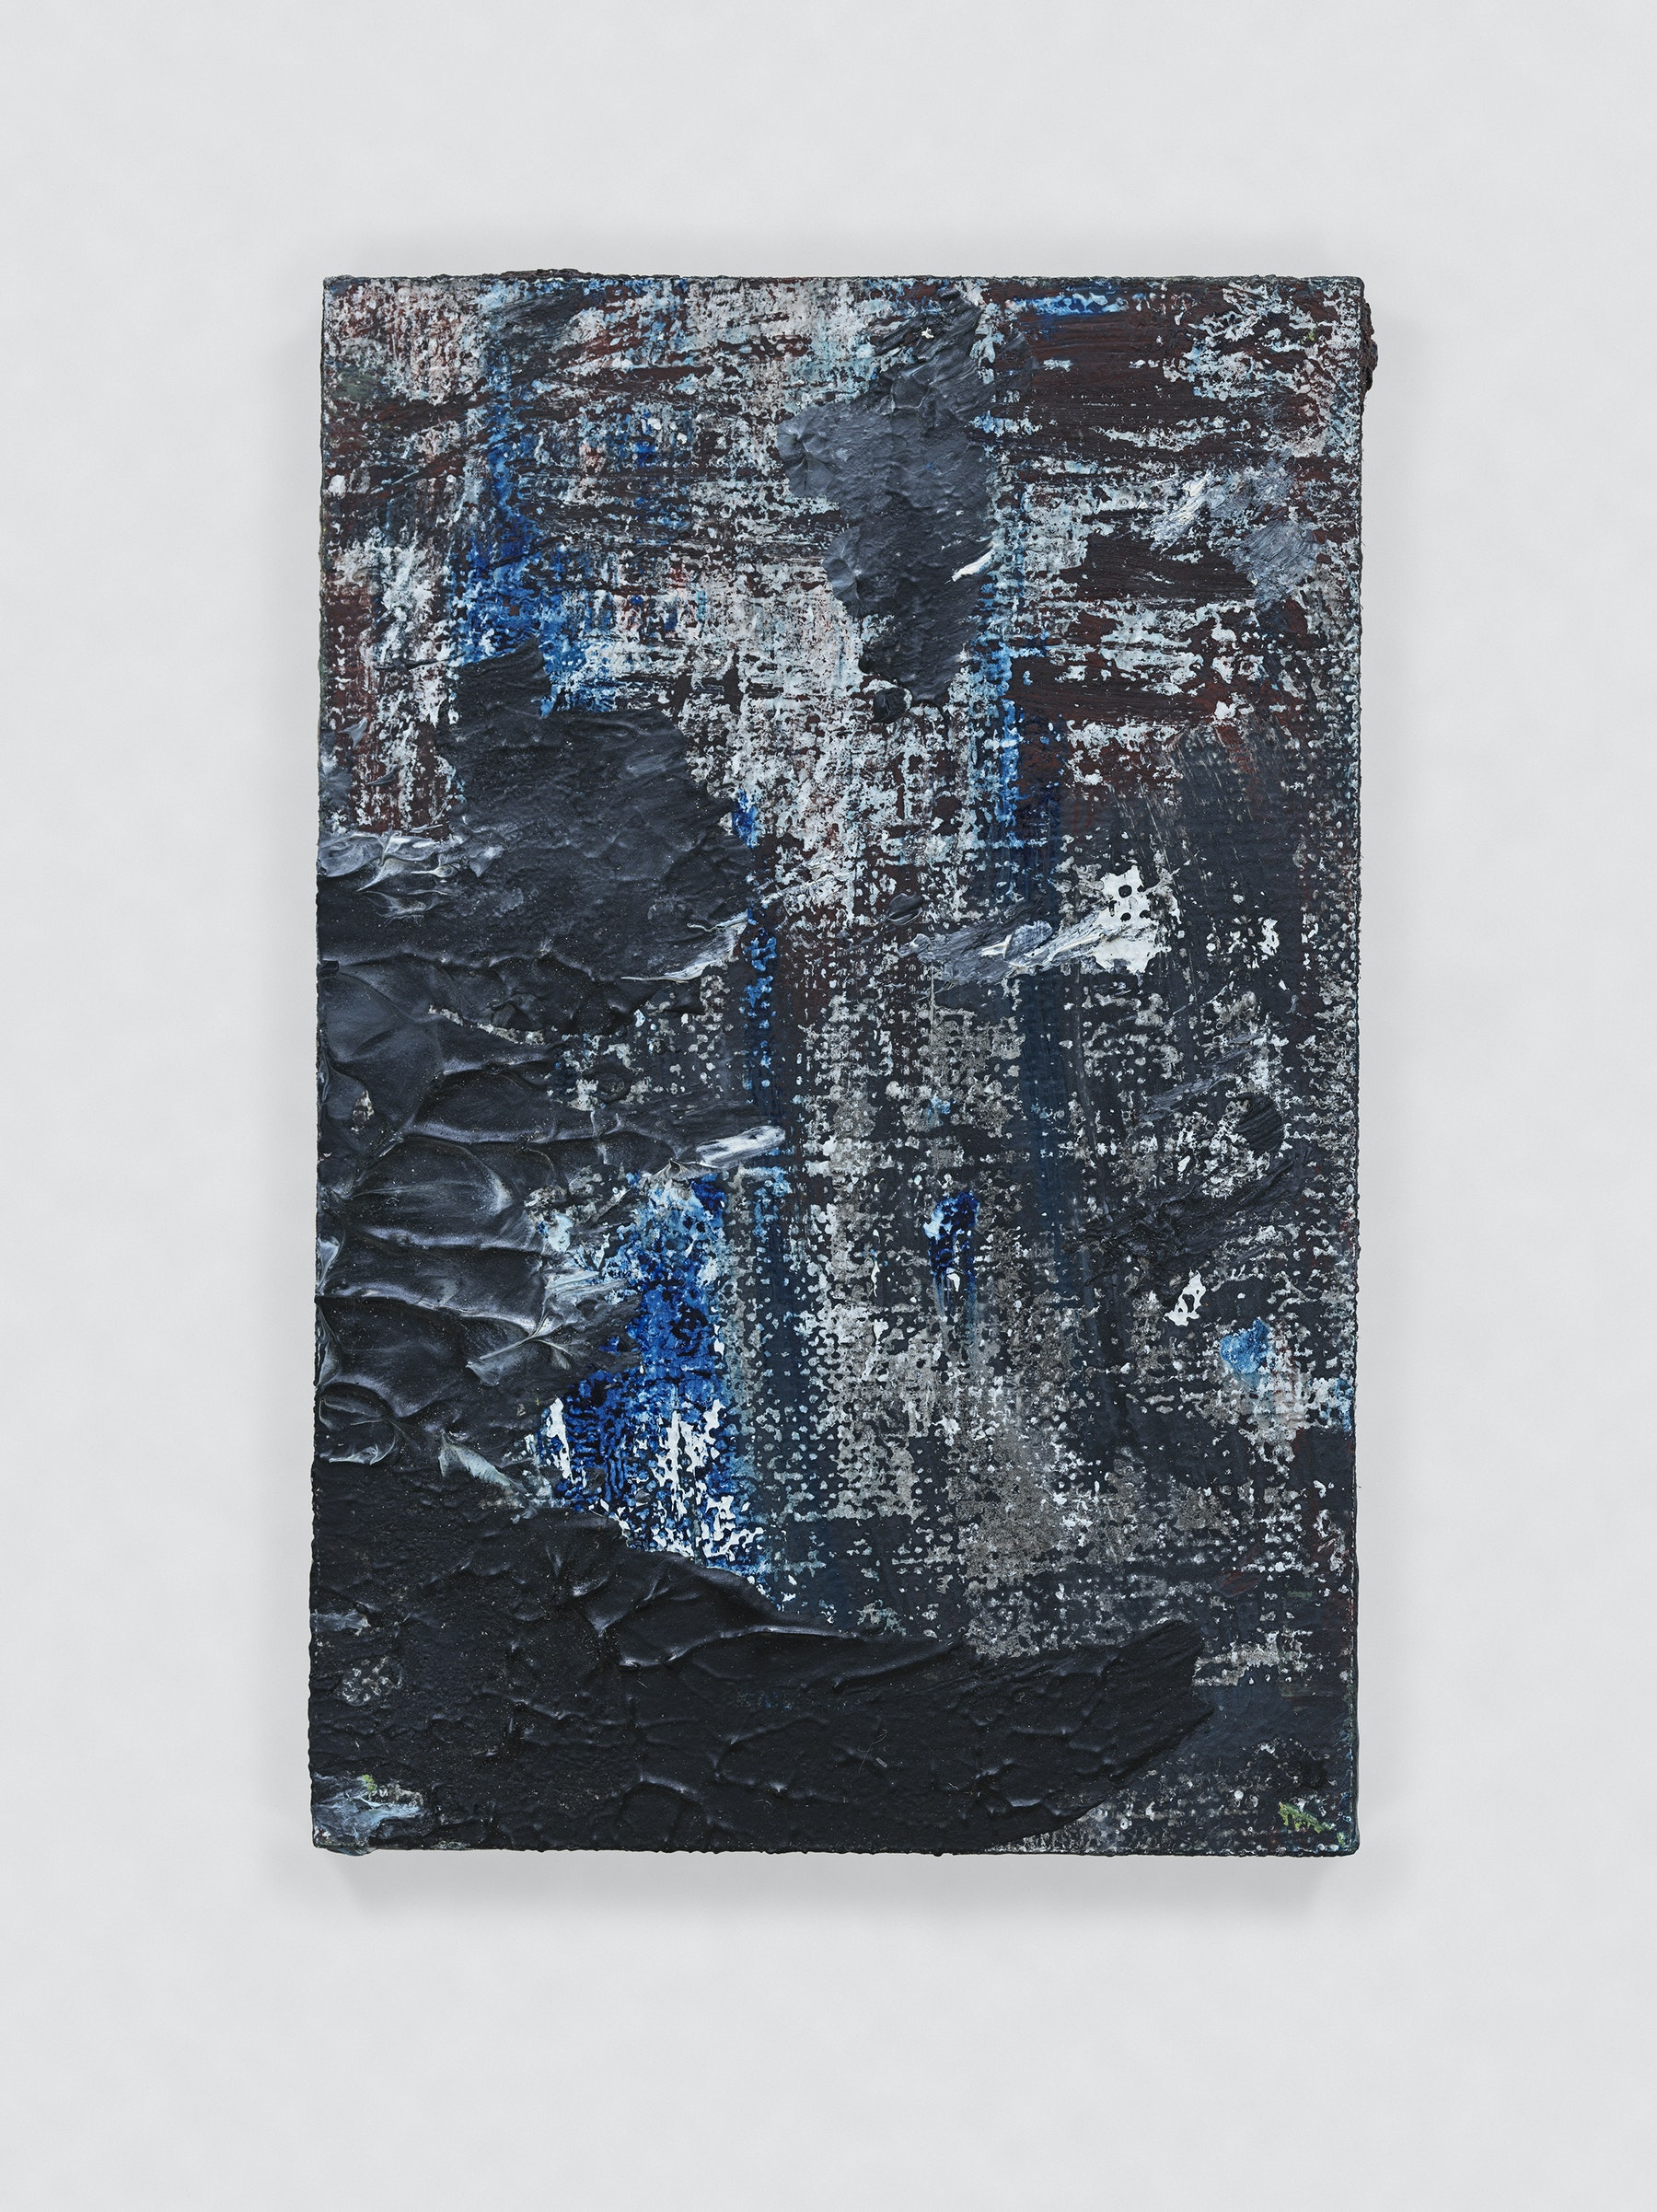 """Louise Fishman """"UNTITLED,"""" 2011 Oil on board 3 x 2"""" [HxW] (7.62 x 5.08 cm) Inventory #FIS135 Courtesy of the artist and Vielmetter Los Angeles Photo credit: Genevieve Hanson Signed and dated on verso"""